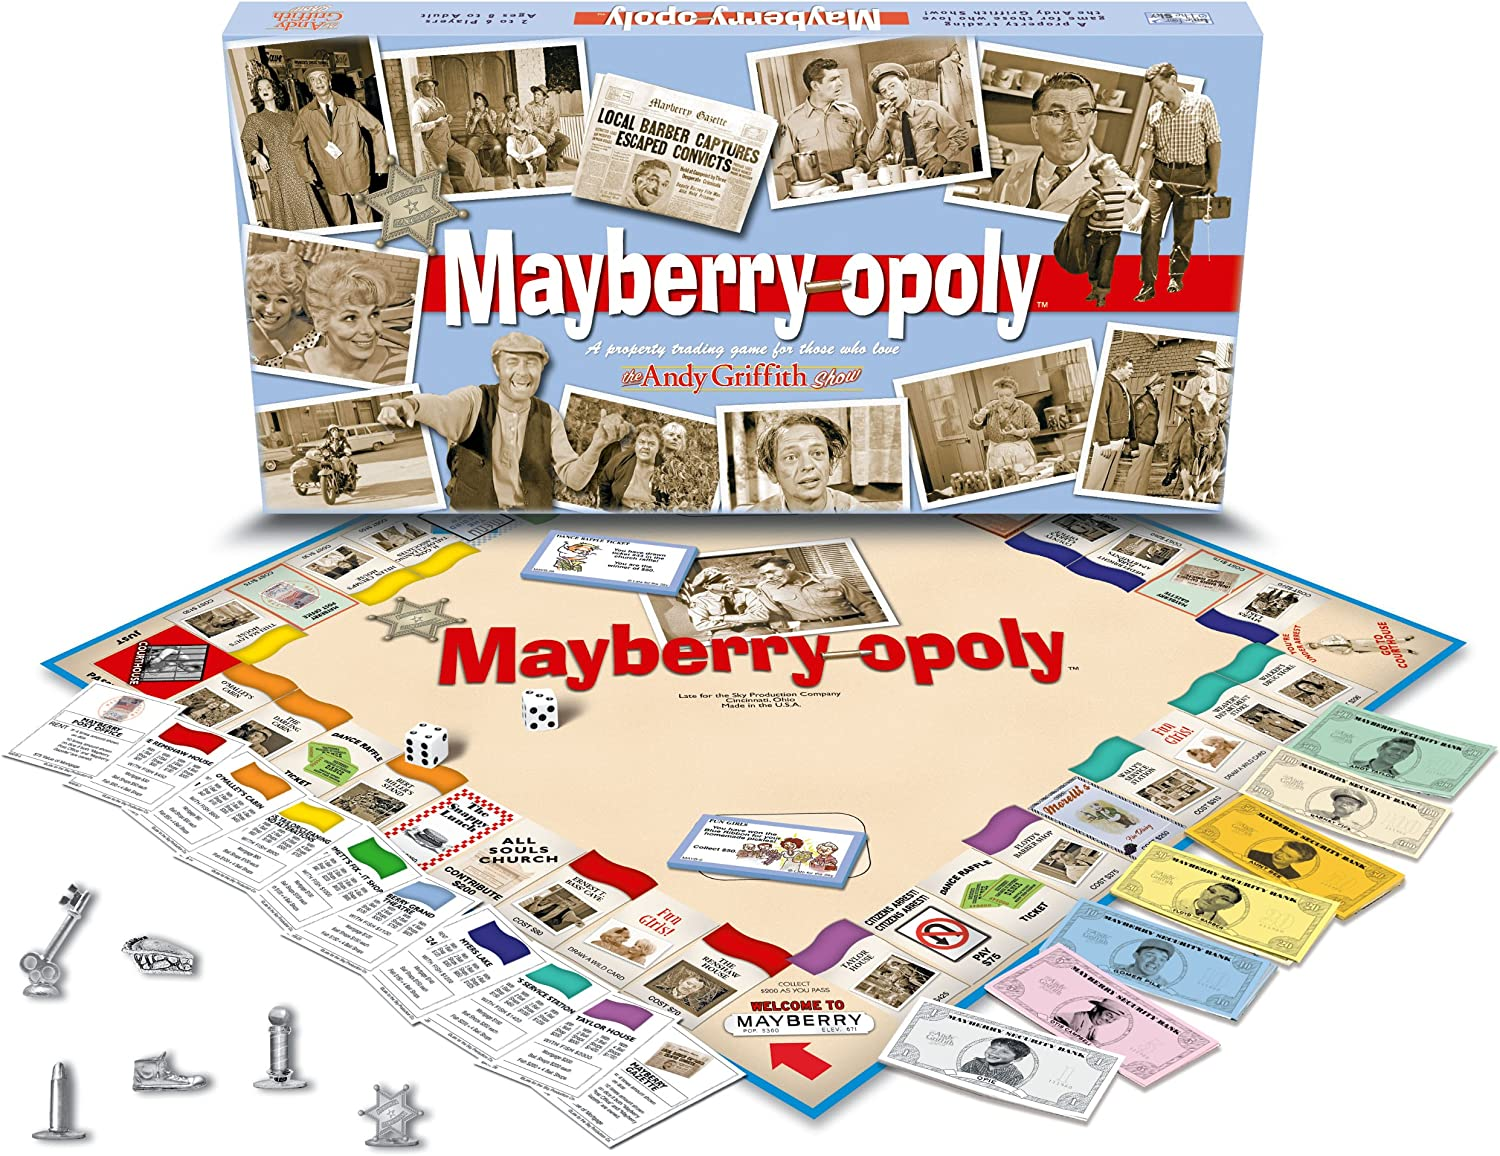 MayberryOpoly  The Andy Griffith Show Monopoly Board Game